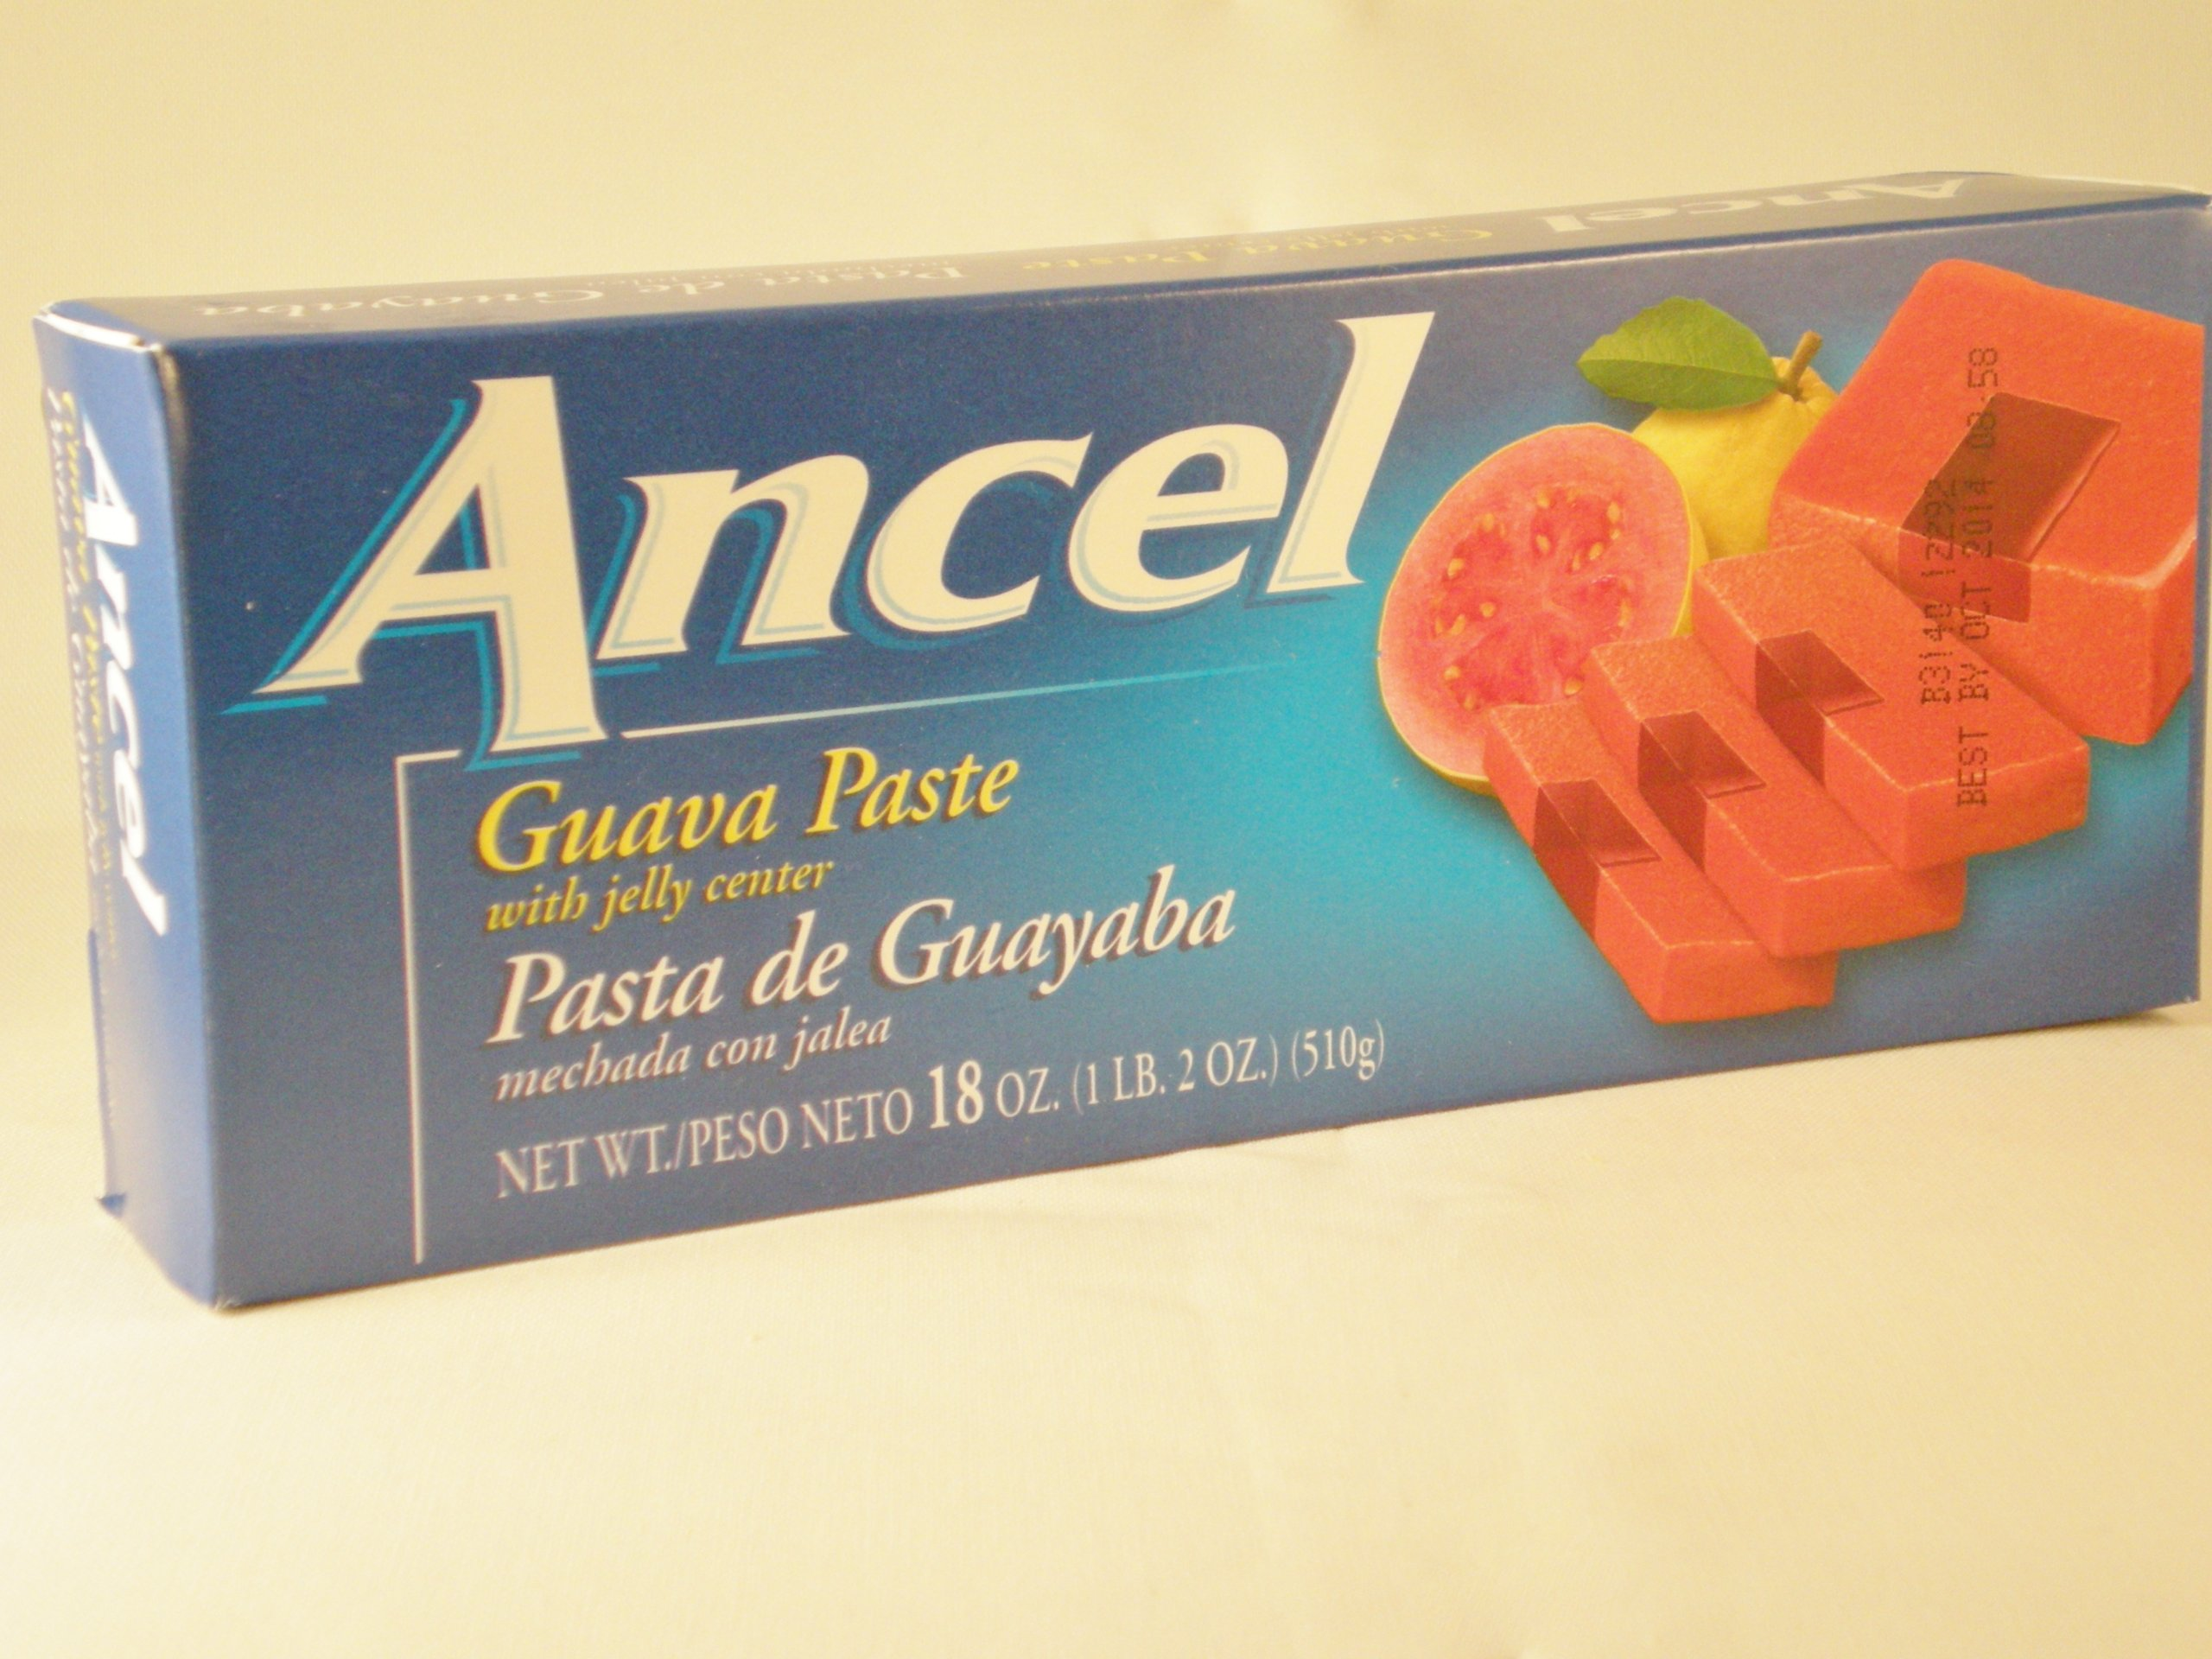 Guava Paste with Jelly Center